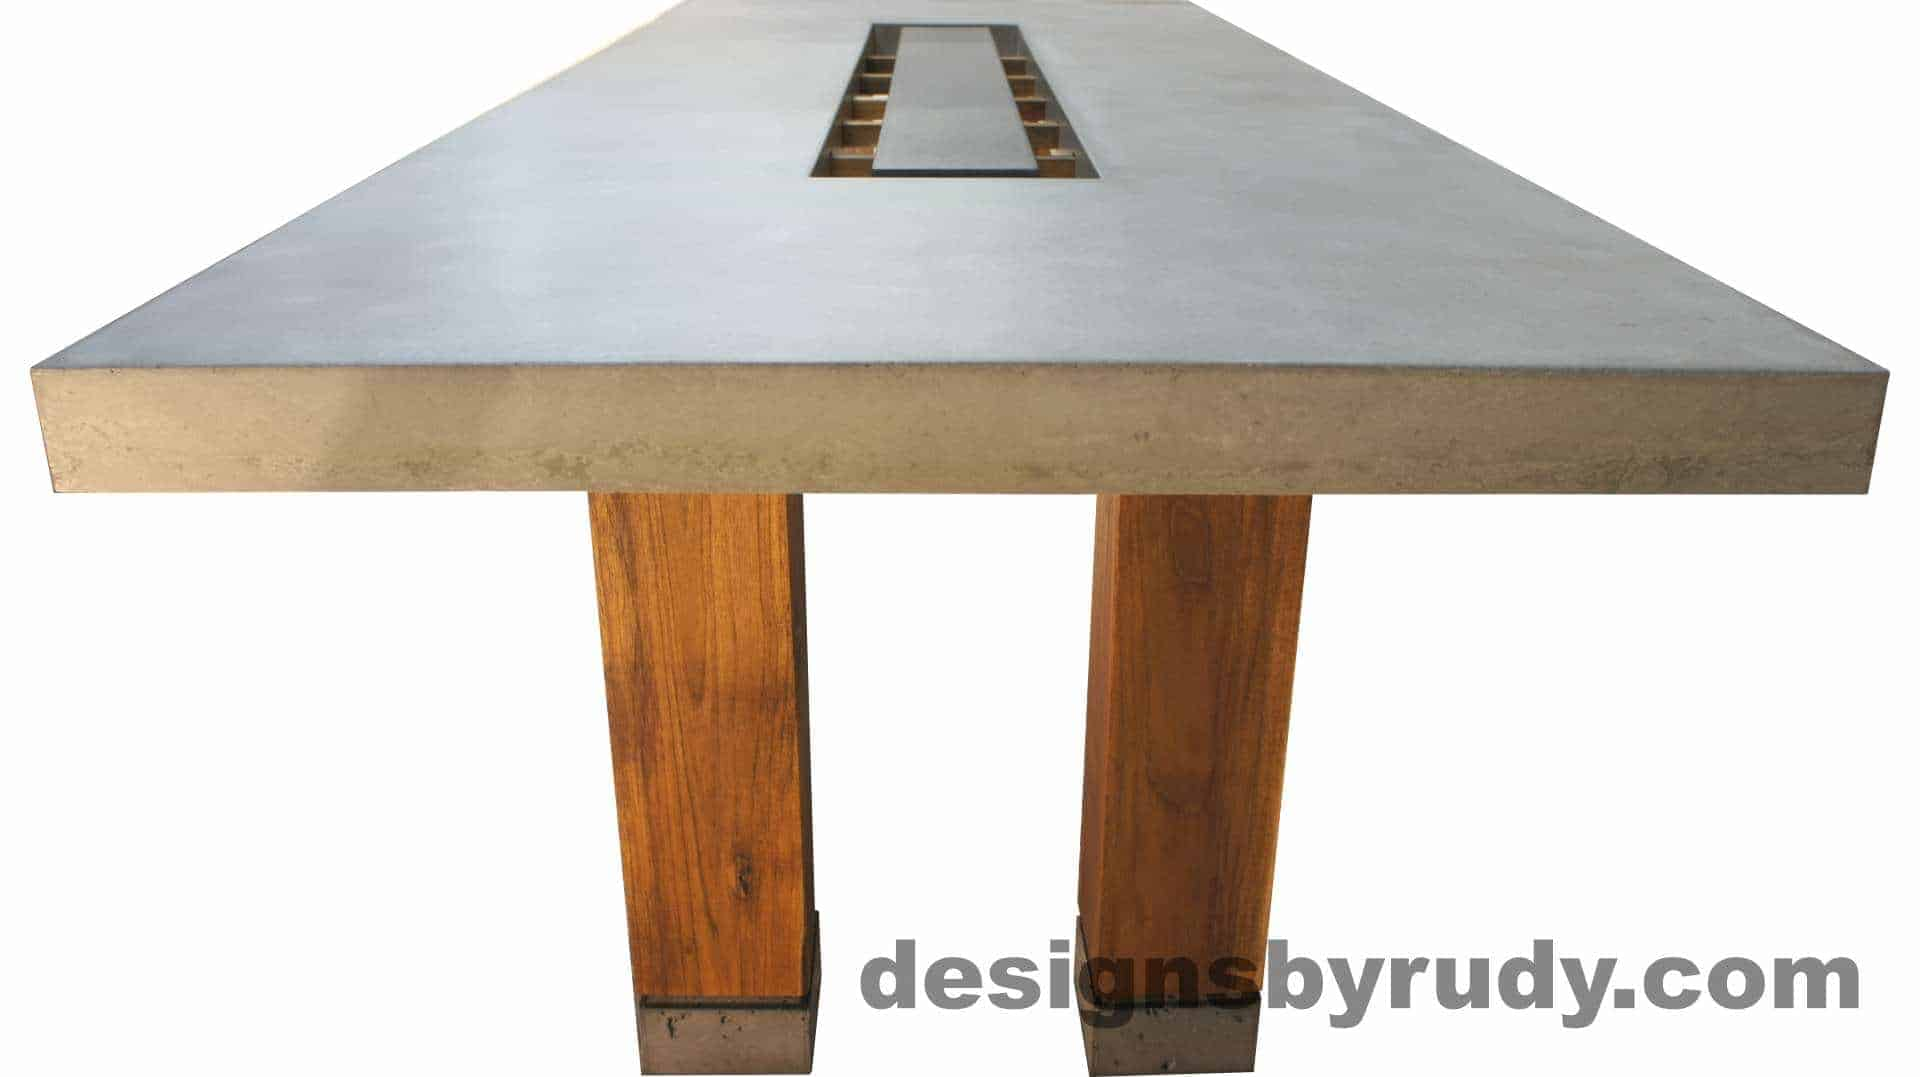 Concrete top dining table on teak legs with center serving tray -long view no deco, Designs by Rudy